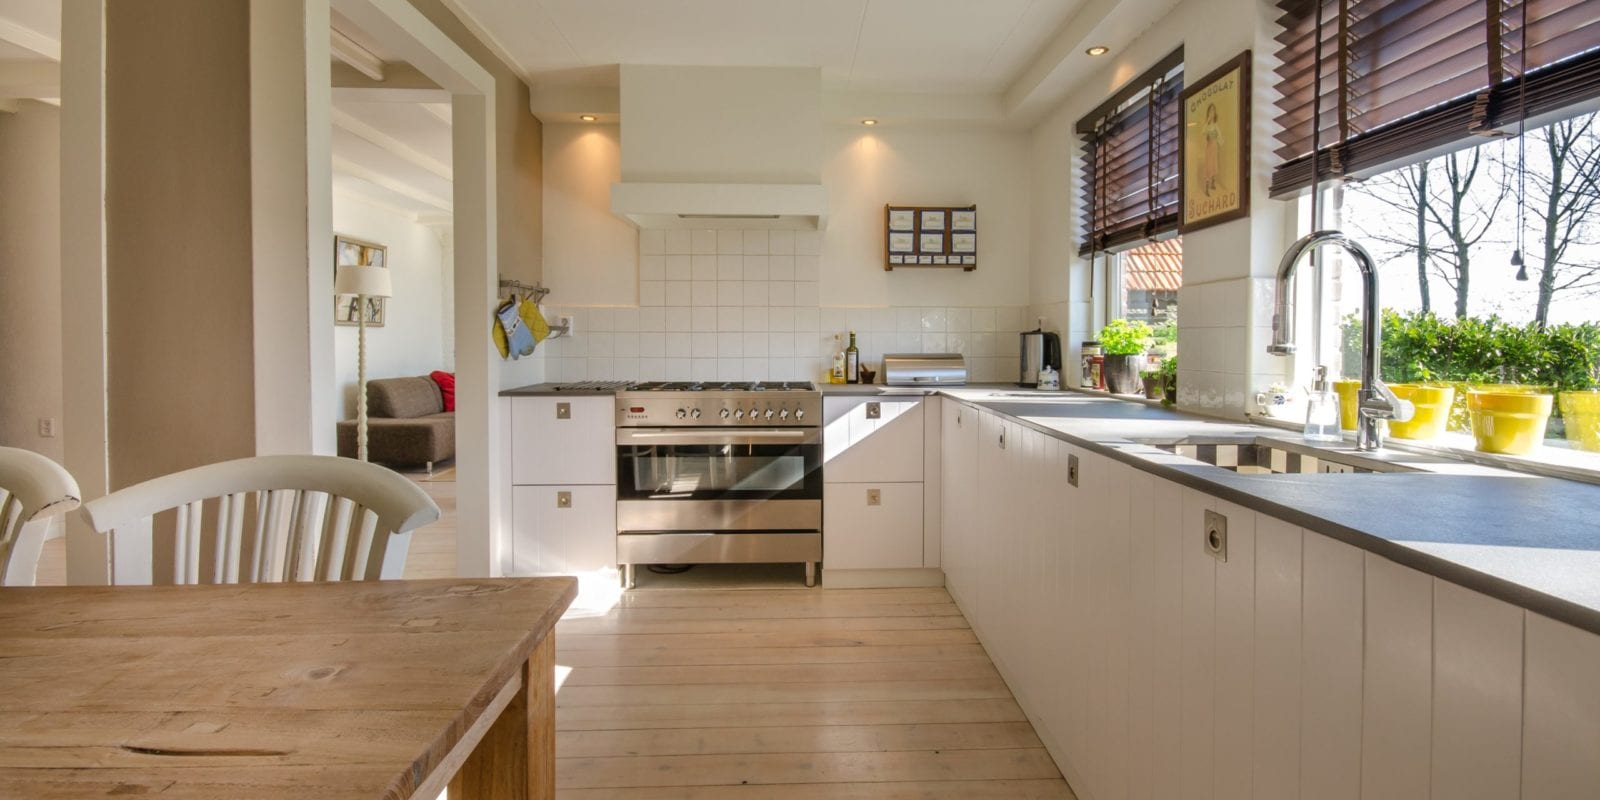 Open plan kitchen in a new build house